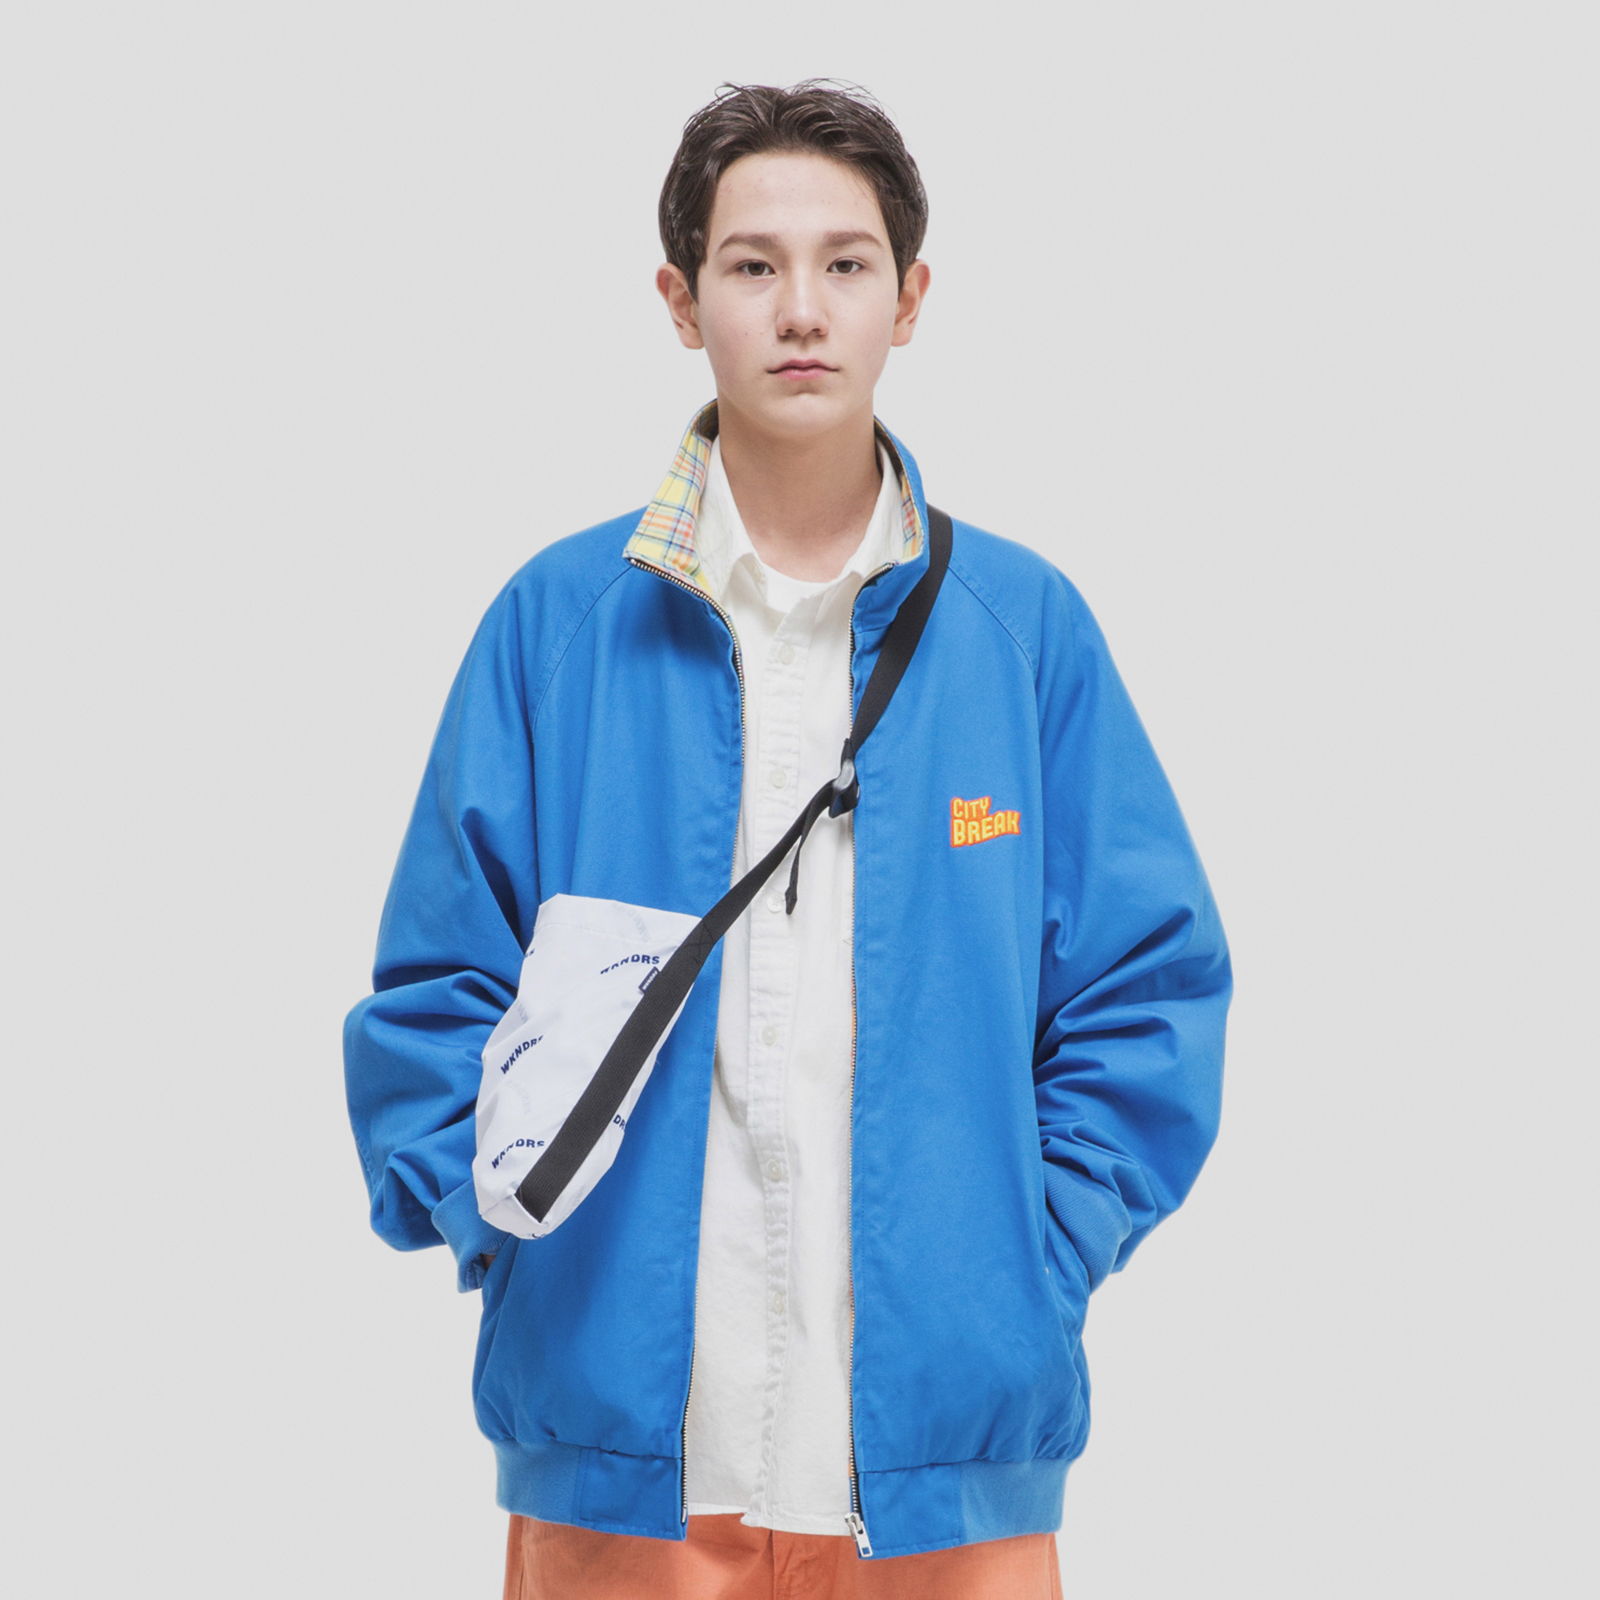 [위캔더스] CITY BREAK BLOUSON BLUE